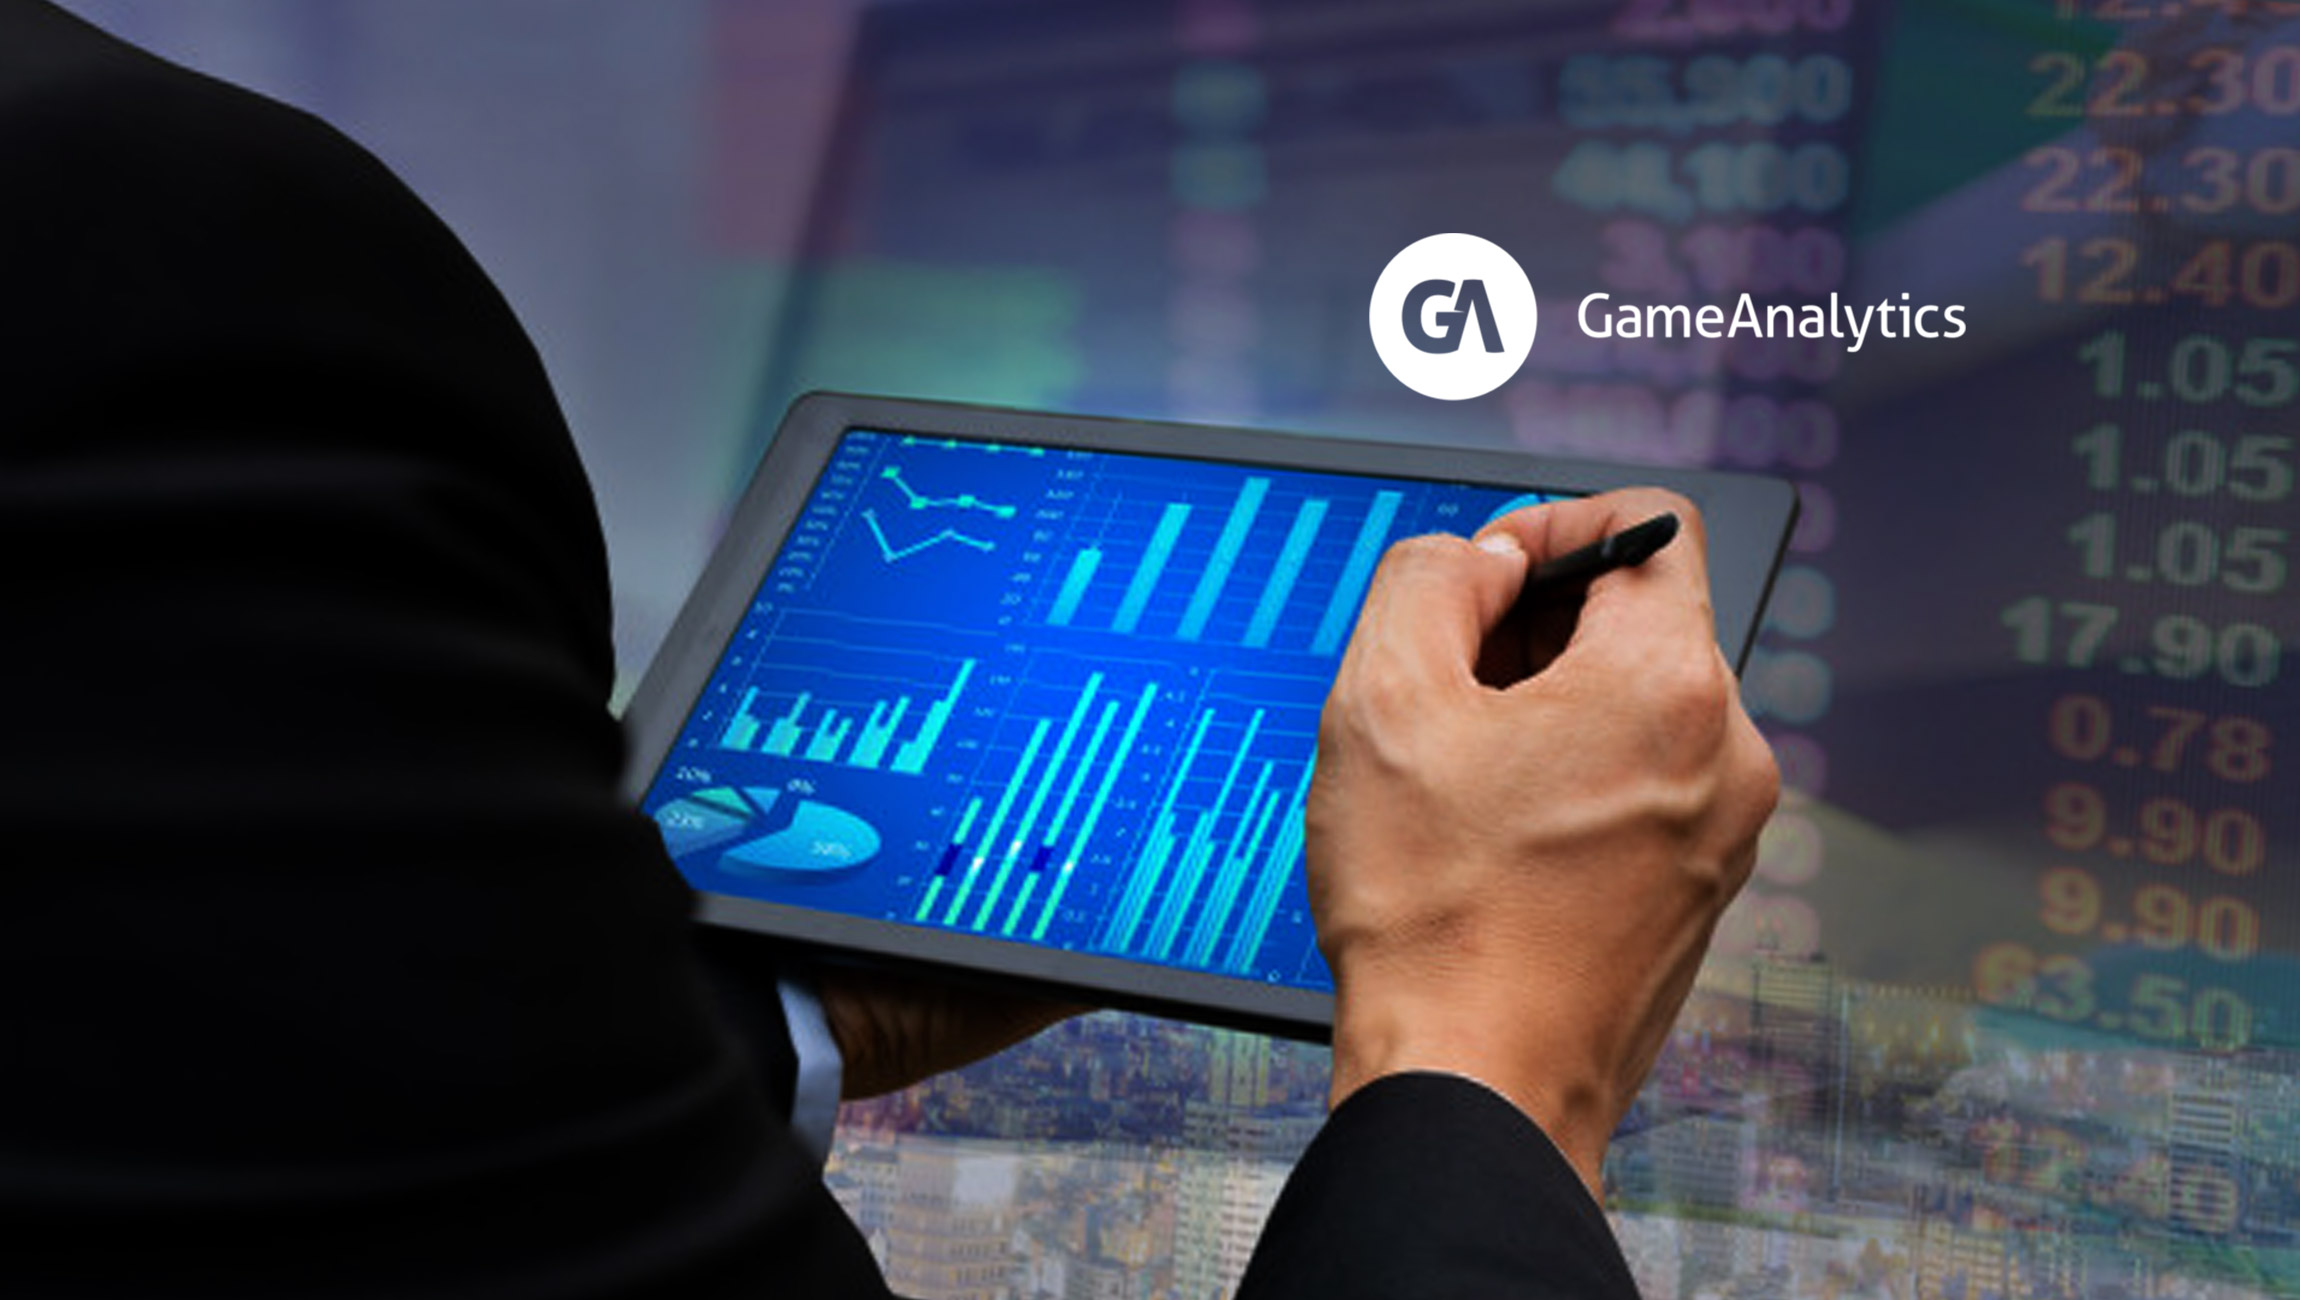 """IAP in """"Casual"""" Games Declines by 15-20%, with Strategy and Rpg Games Accounting for the Majority of Non AD-Based Revenue According to the Latest Gameanalytics Benchmark Report"""